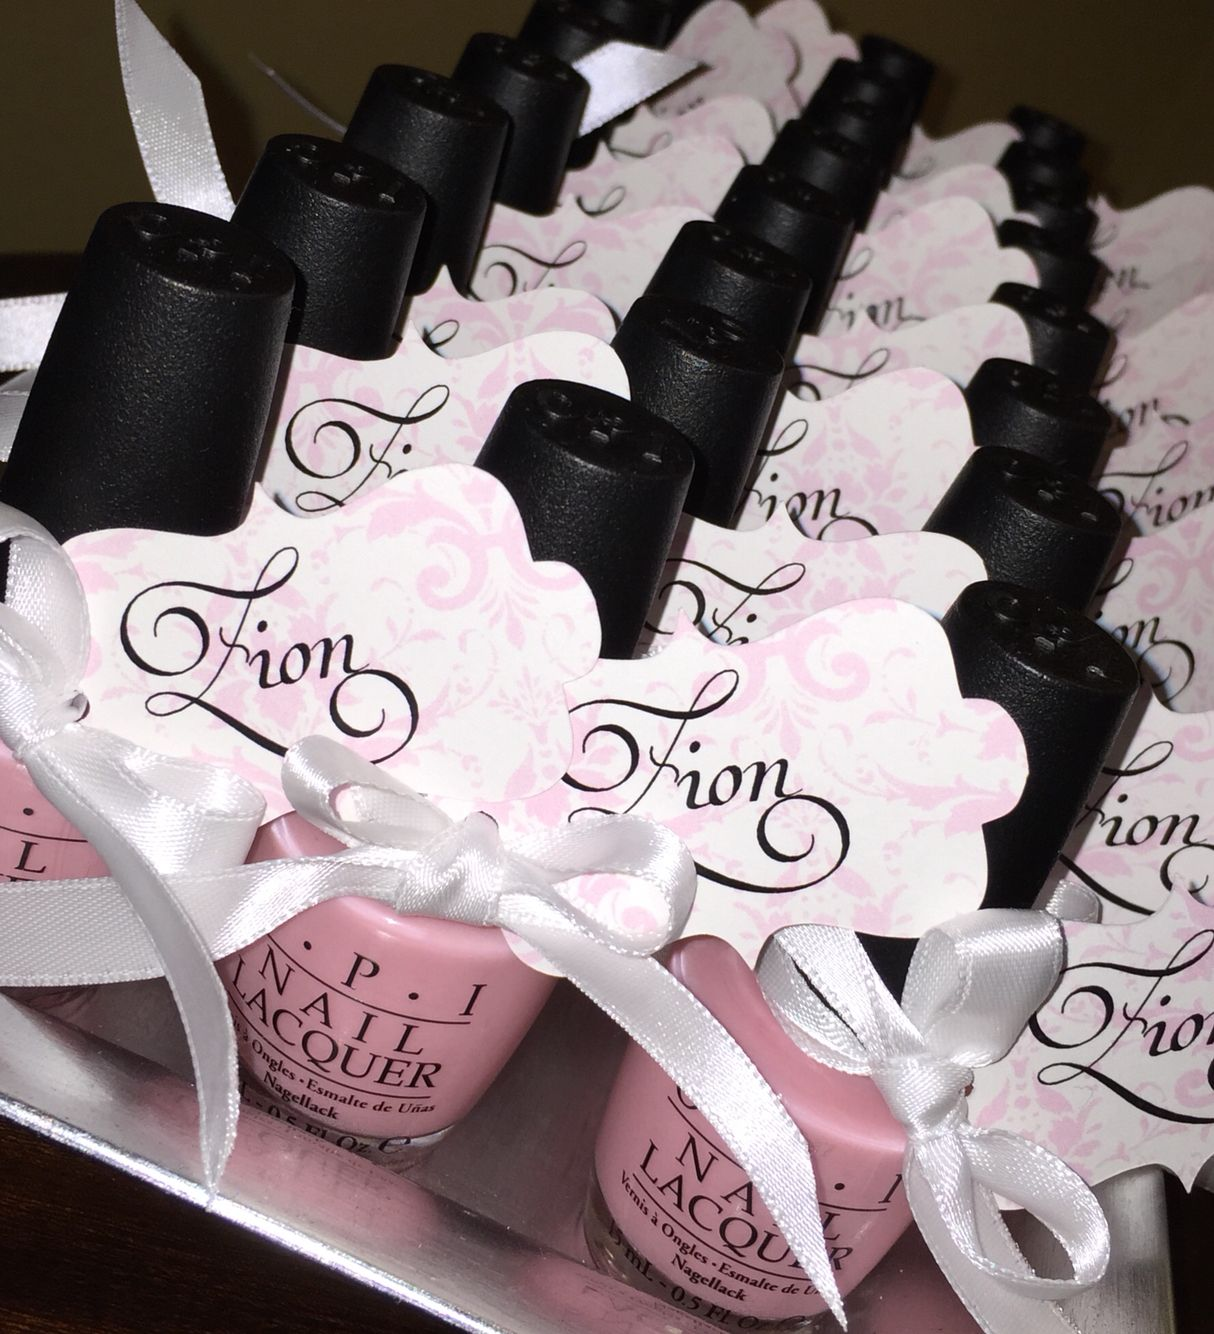 My baby shower favors. It's a girl OPI nail polish color